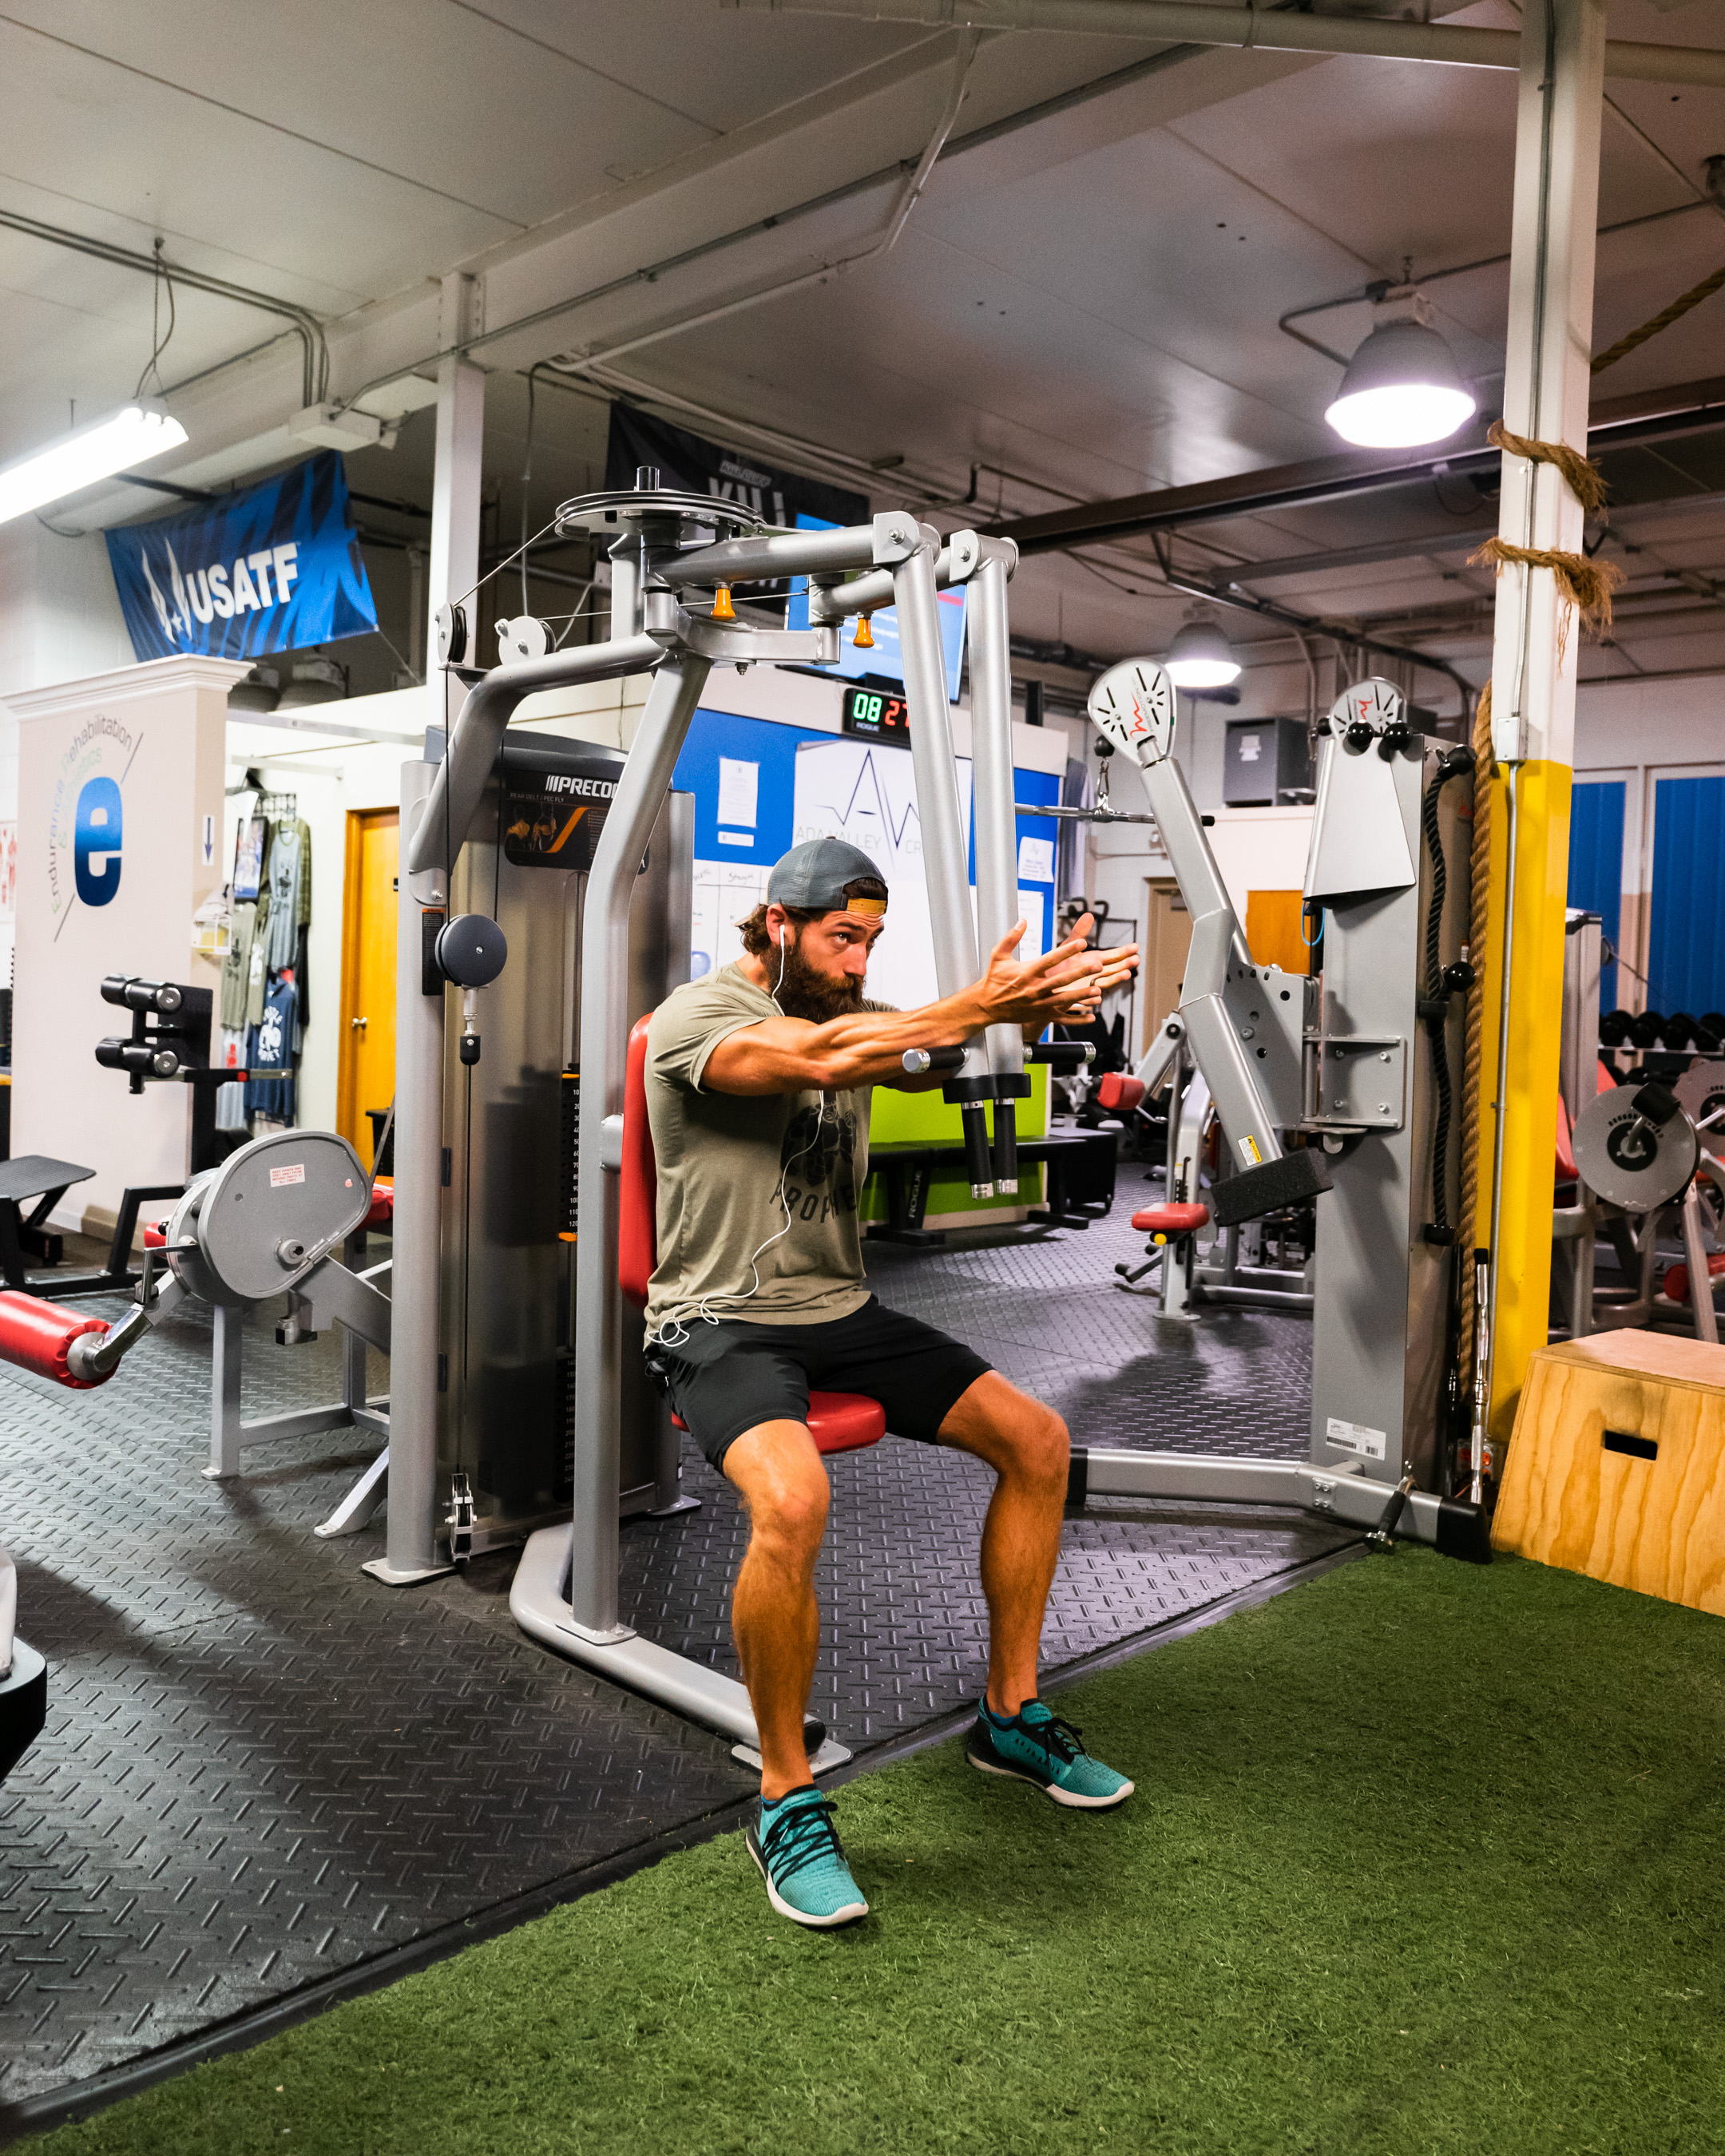 Workout machines at Prevail Grand Rapids personal training and gym located in Ada, Michigan.